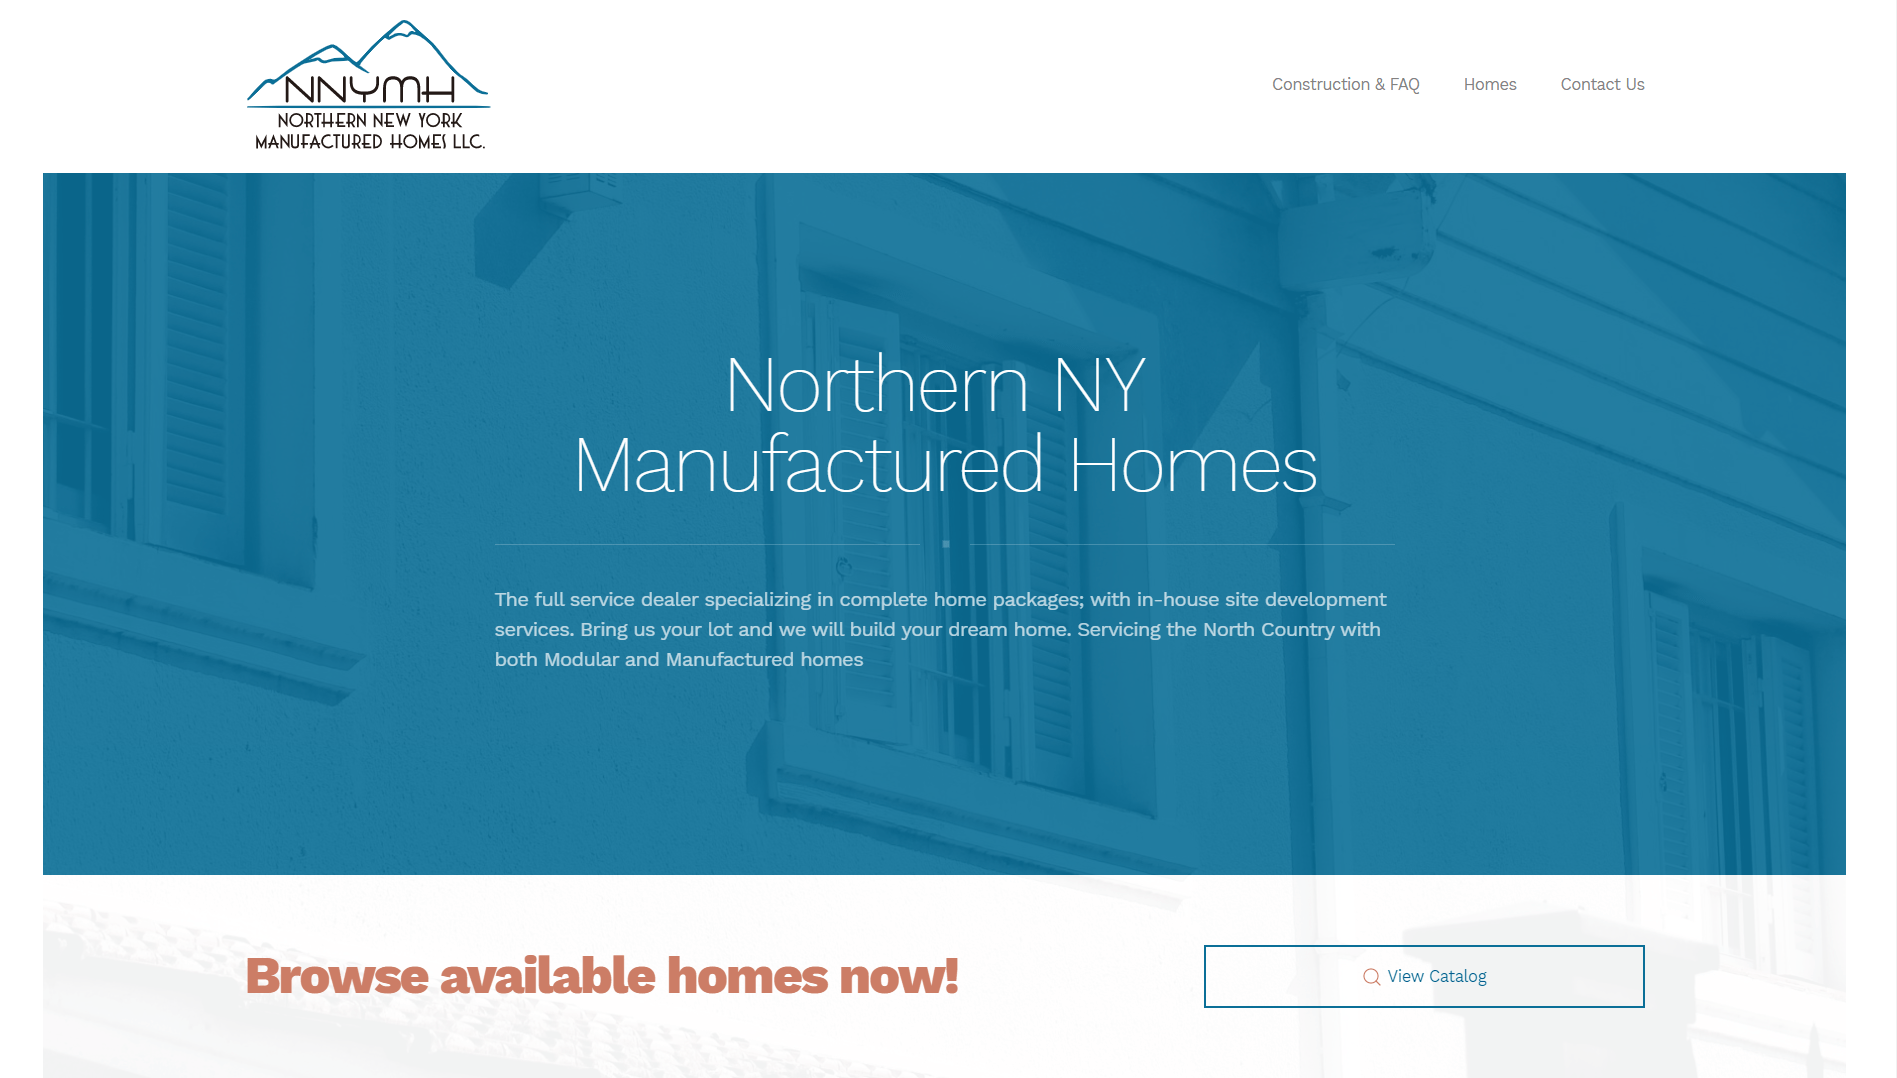 Northern New York Manufactured Homes